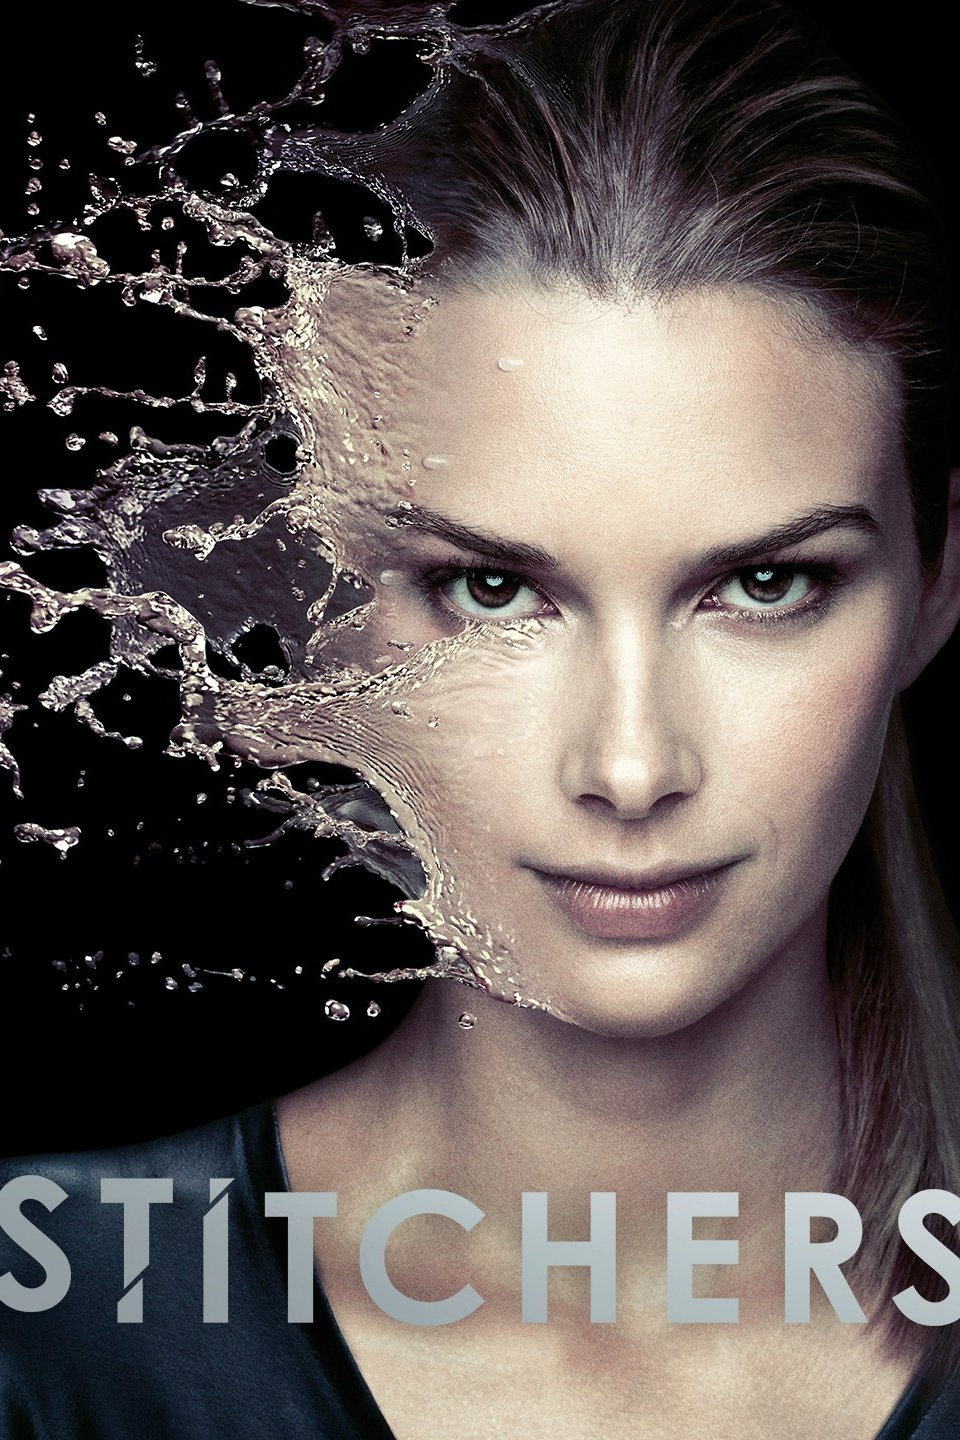 Stitchers Season 3 Episode 4 Download HDTV 480p & 720p